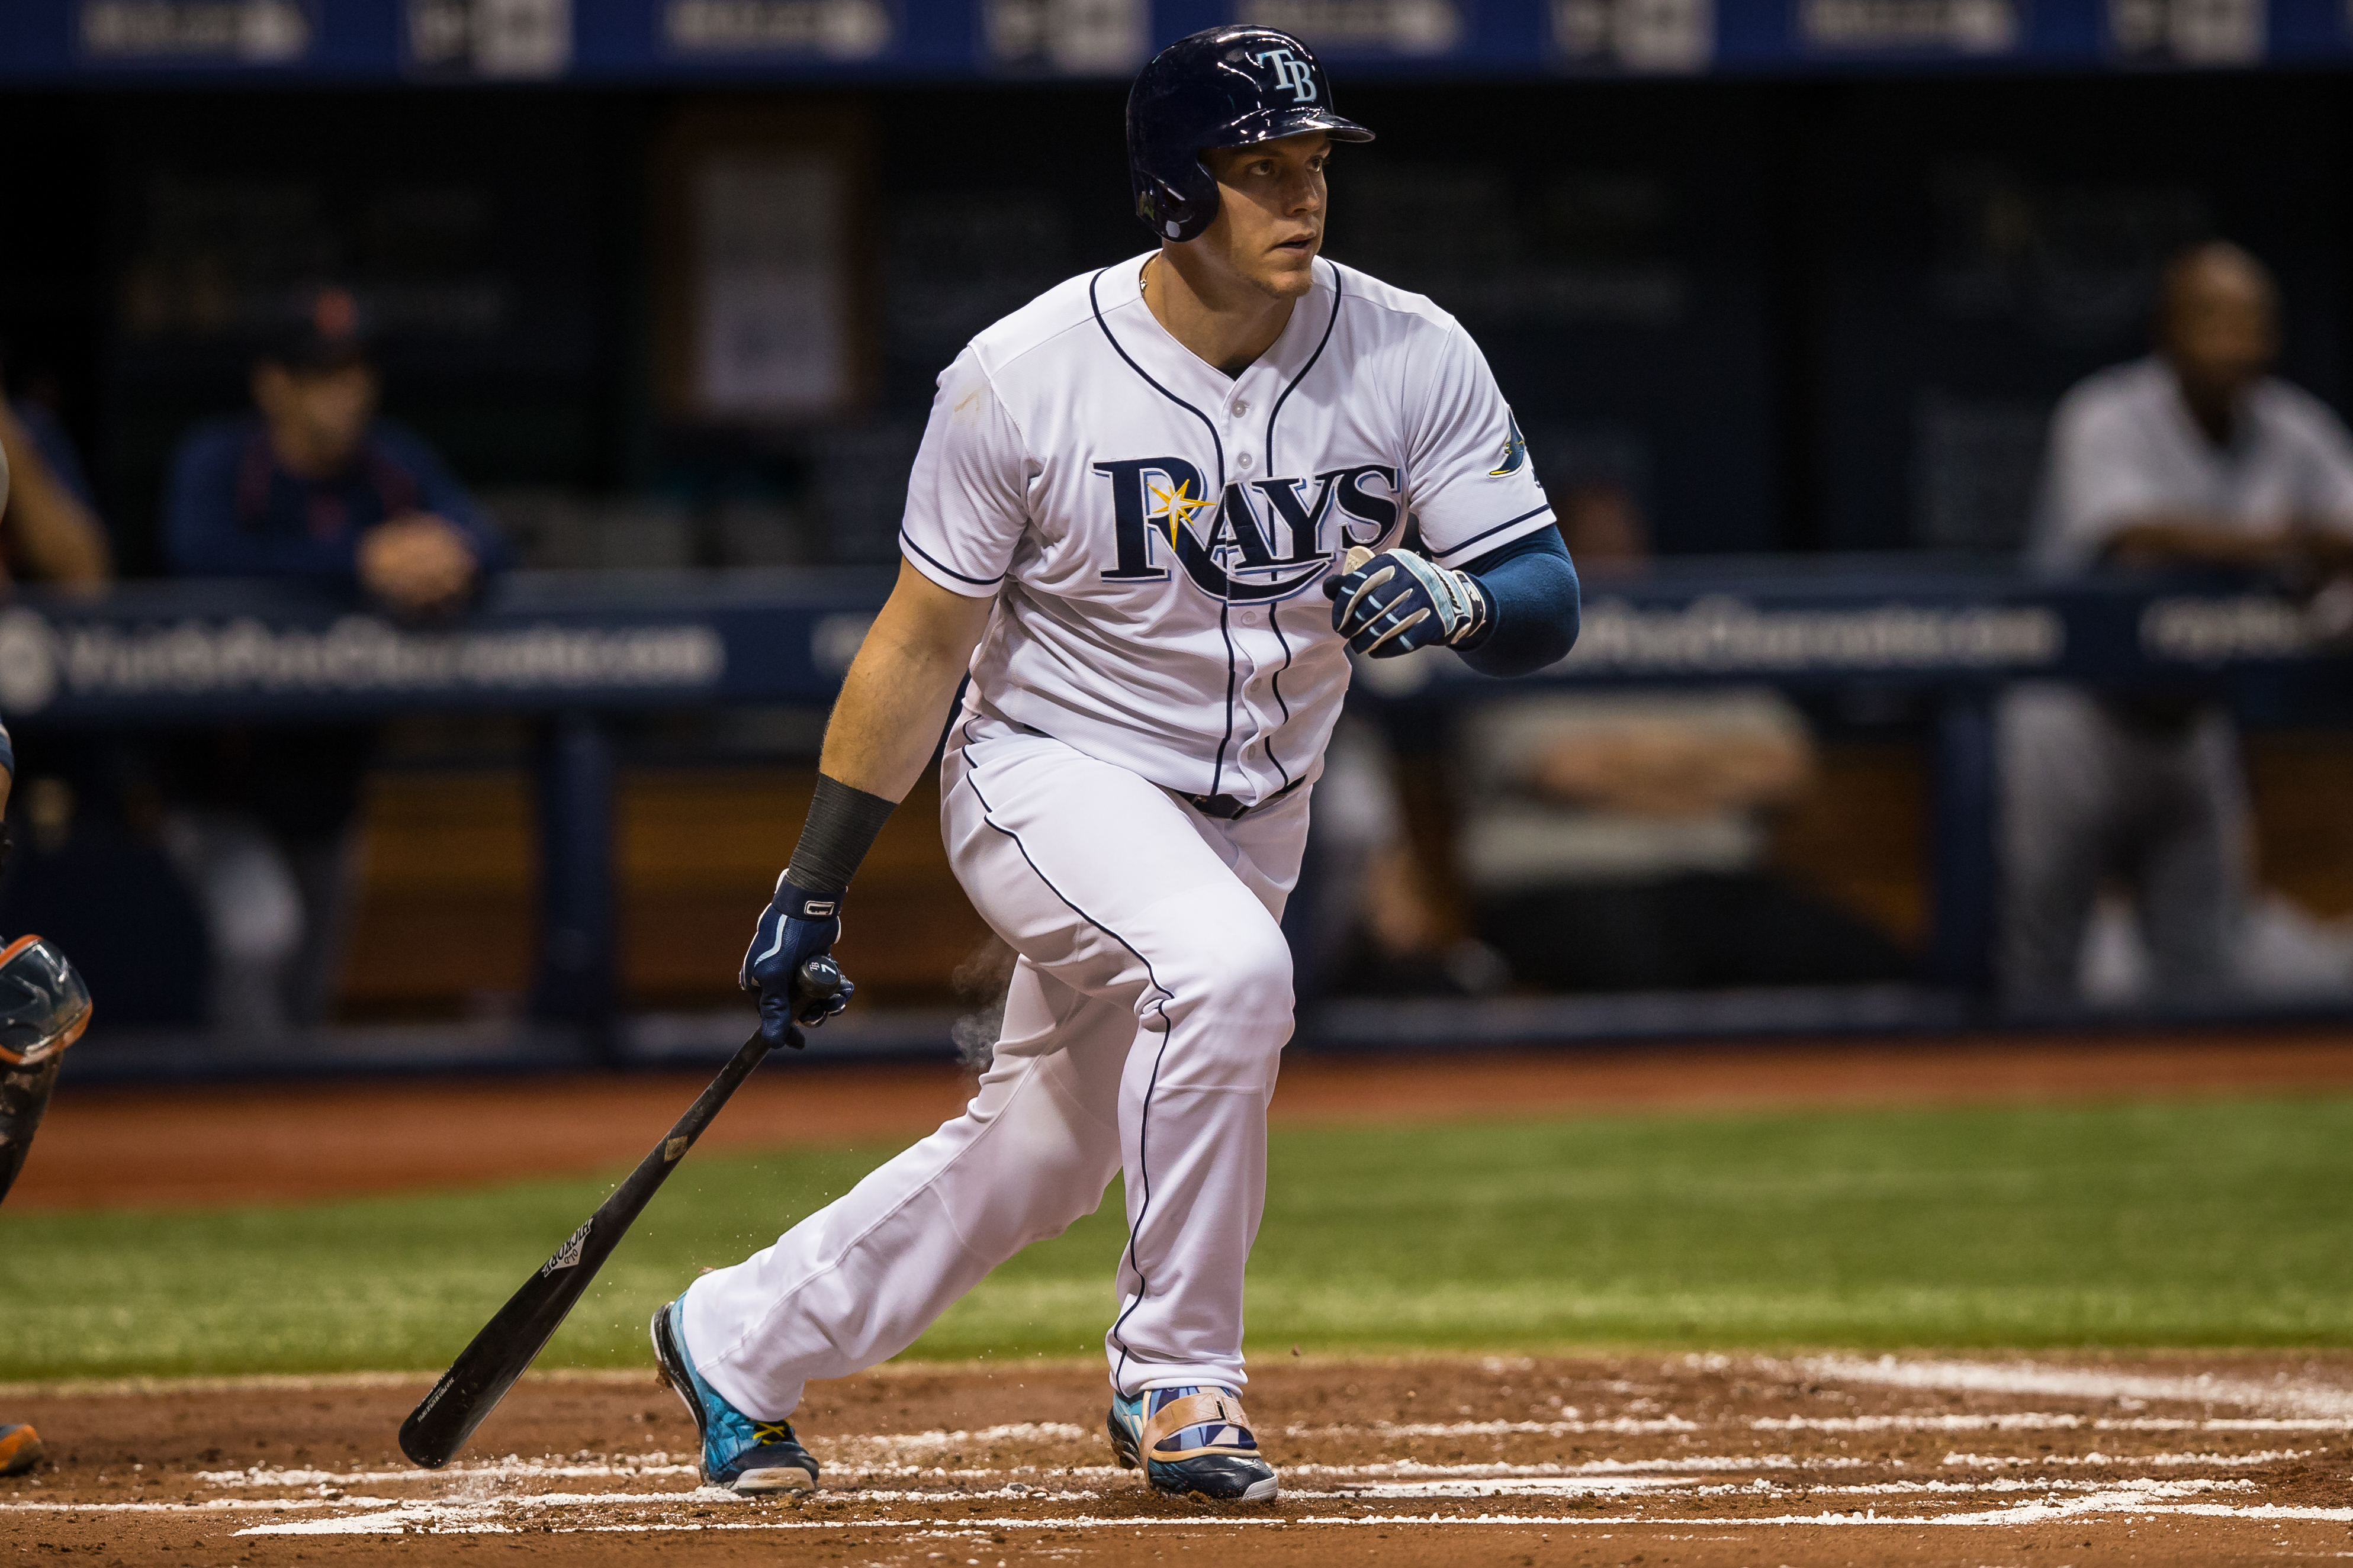 Morrison has had a lot of big hits for the Rays./STEVEN MUNCIE